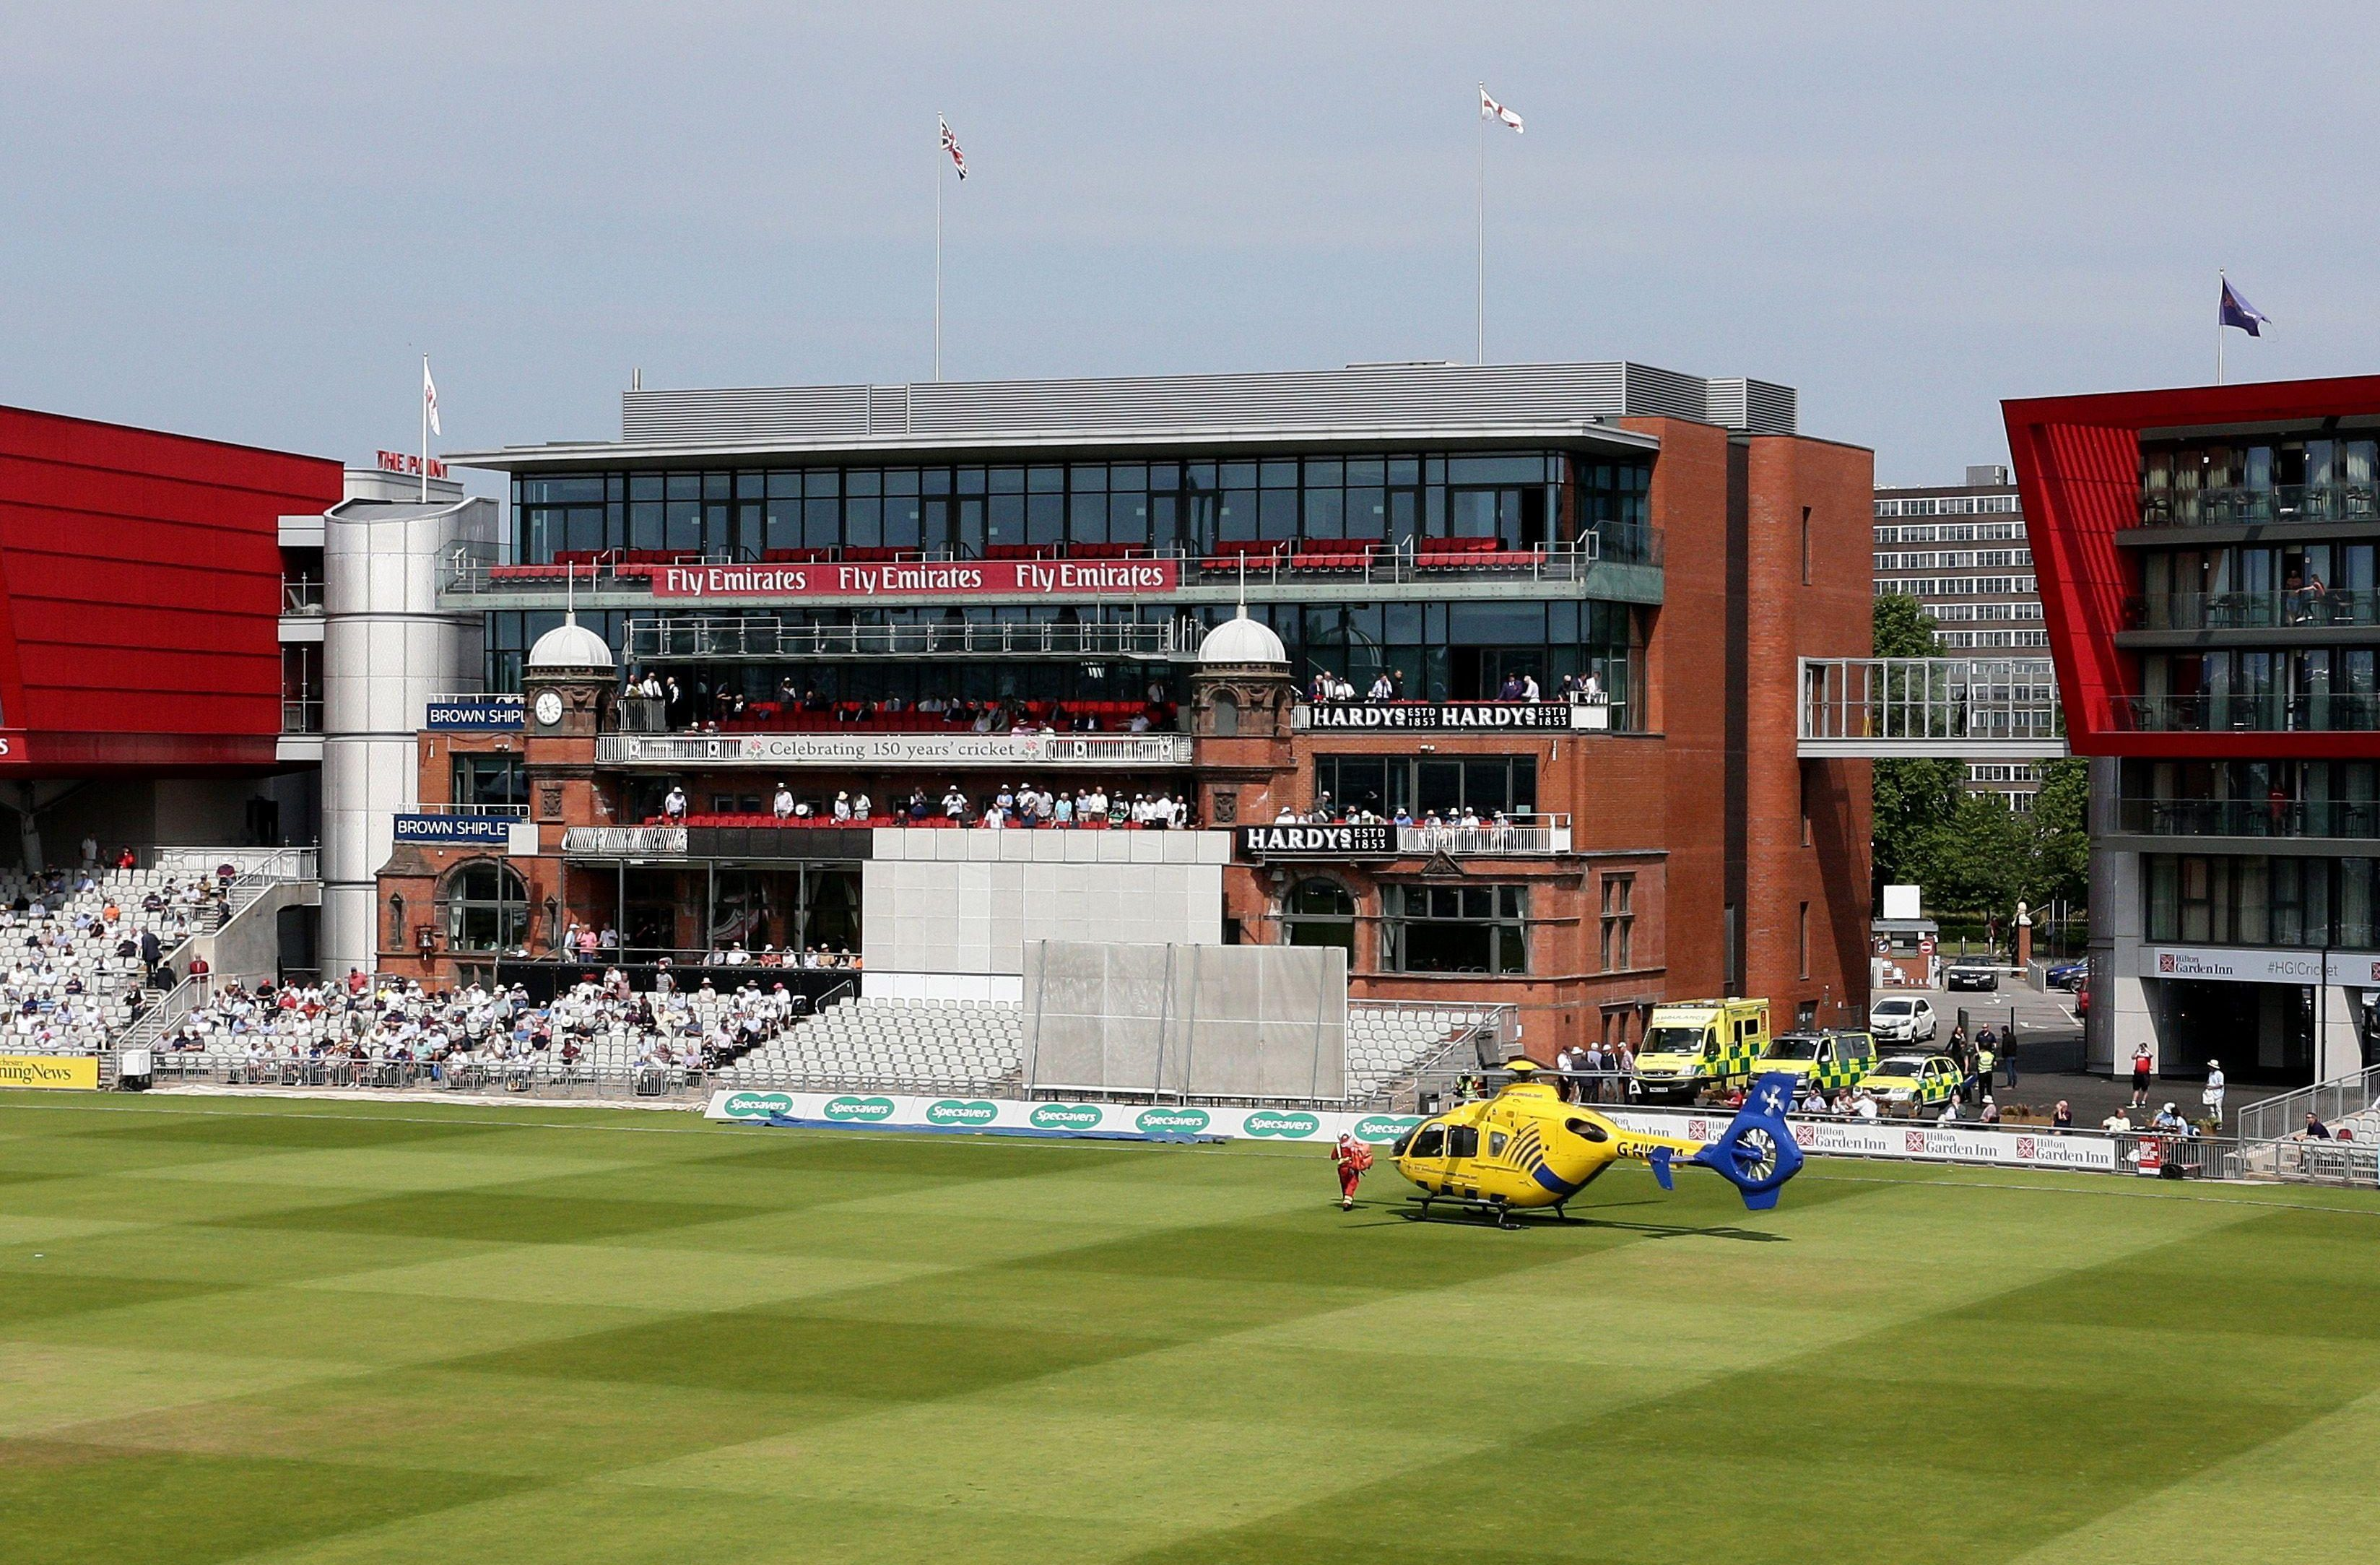 The air ambulance interrupted play at Old Trafford to tend to an emergency